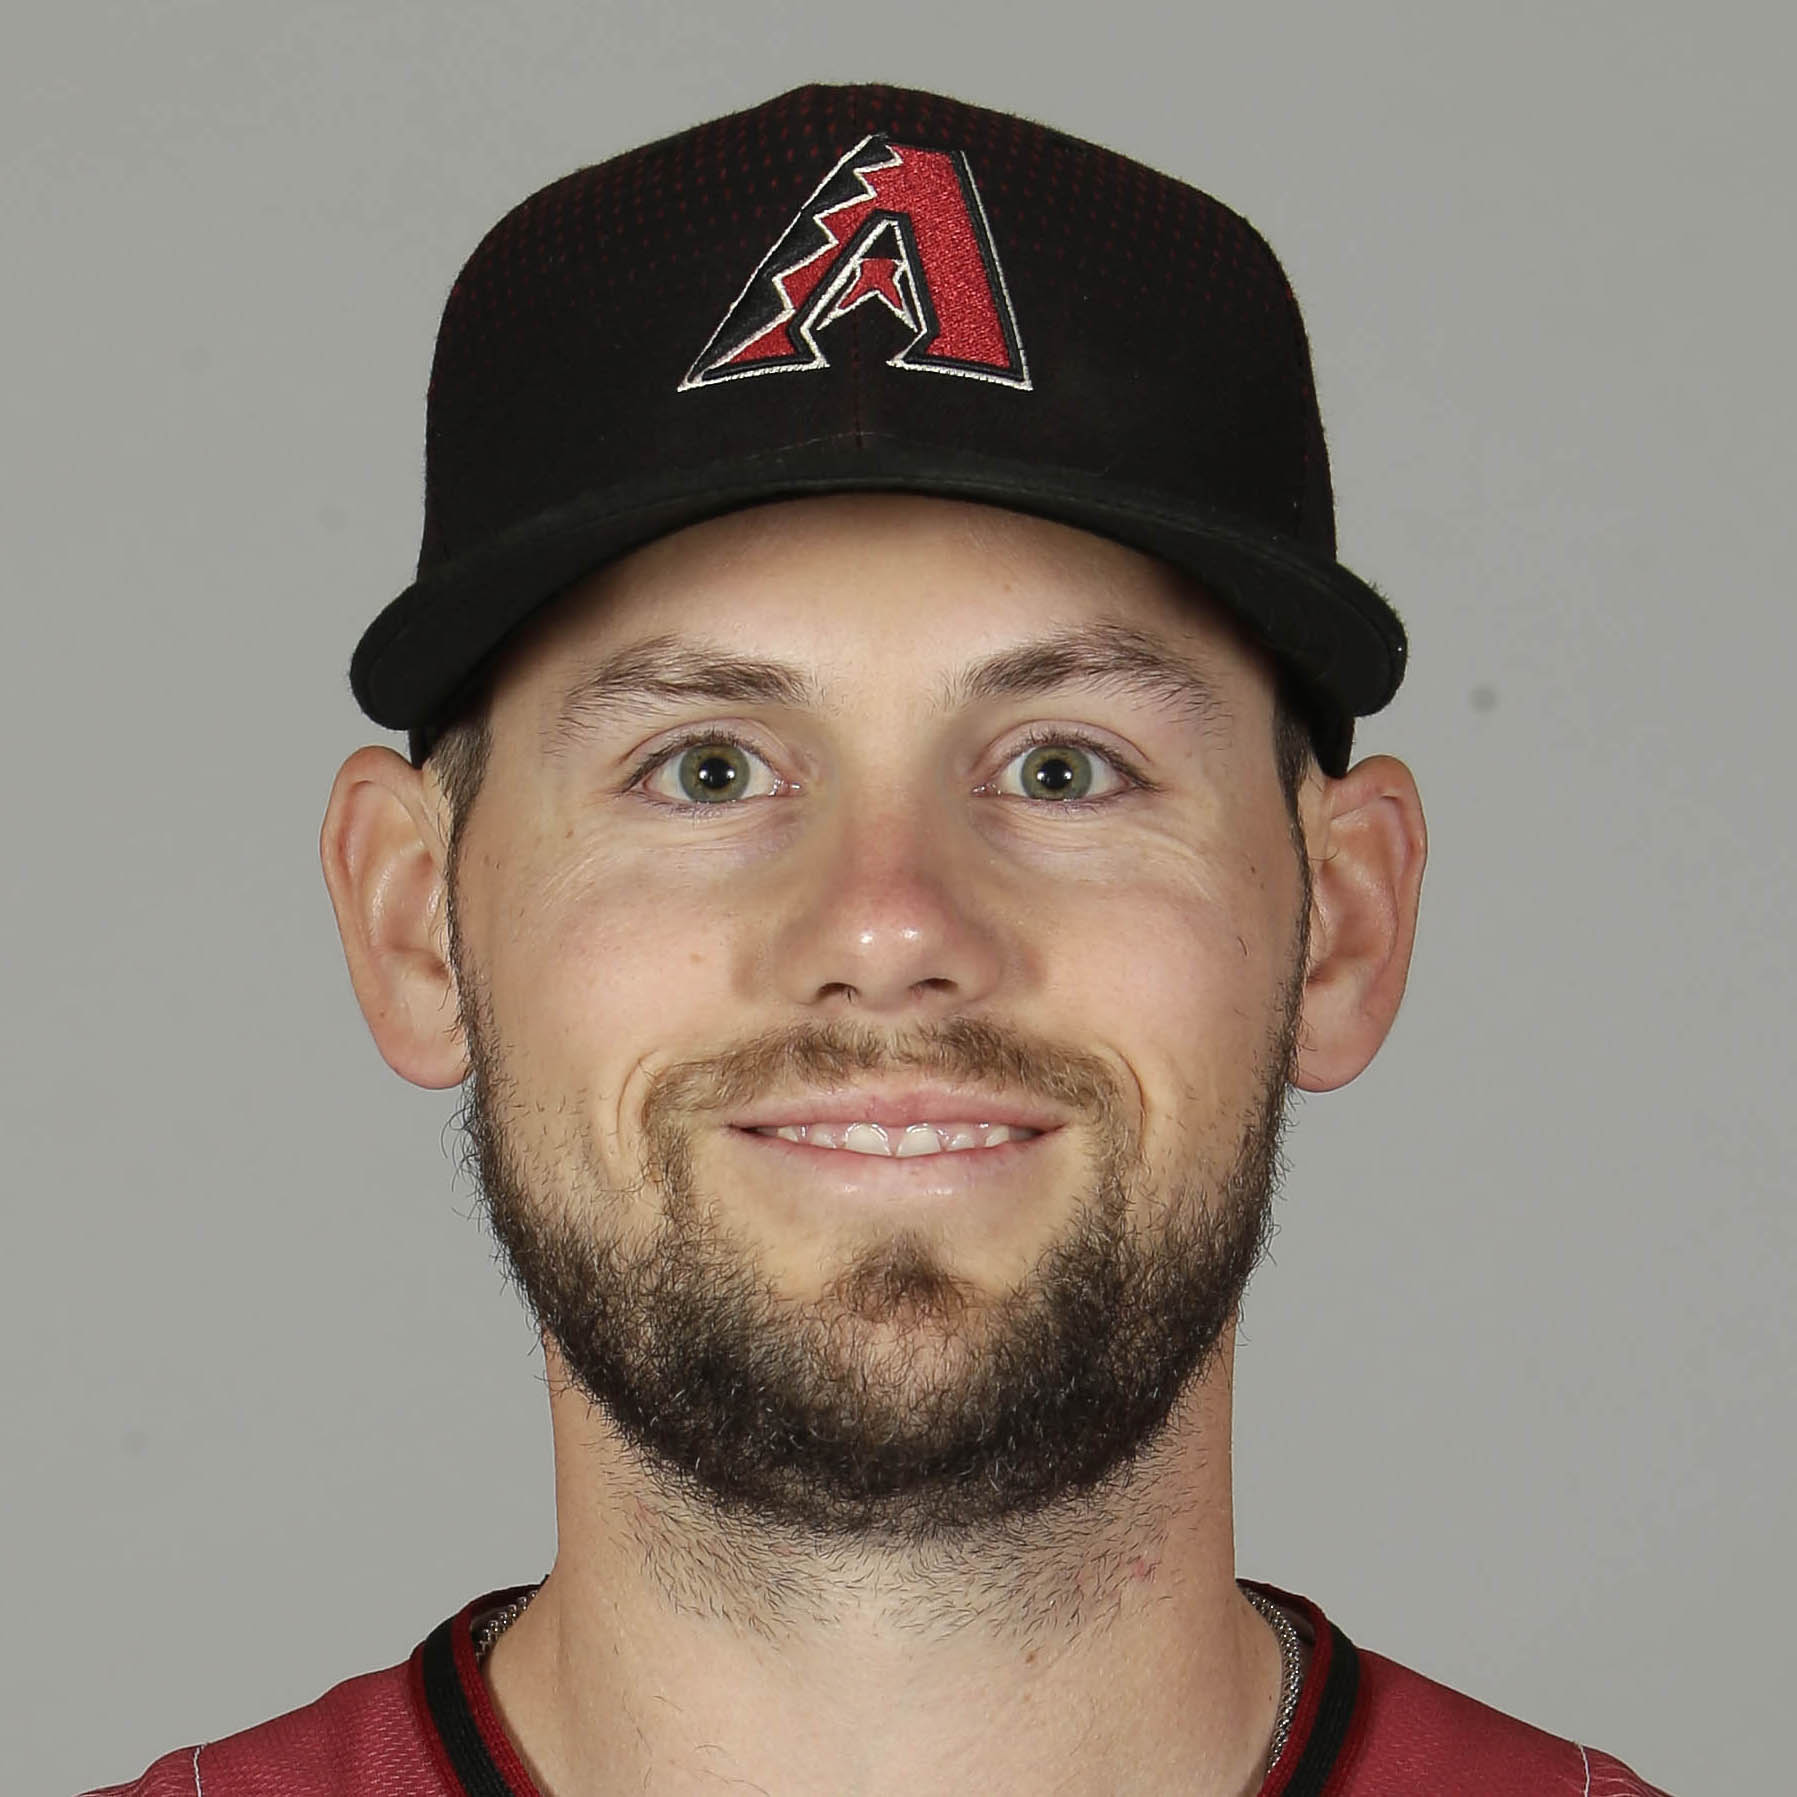 Chris Owings (R) Headshot